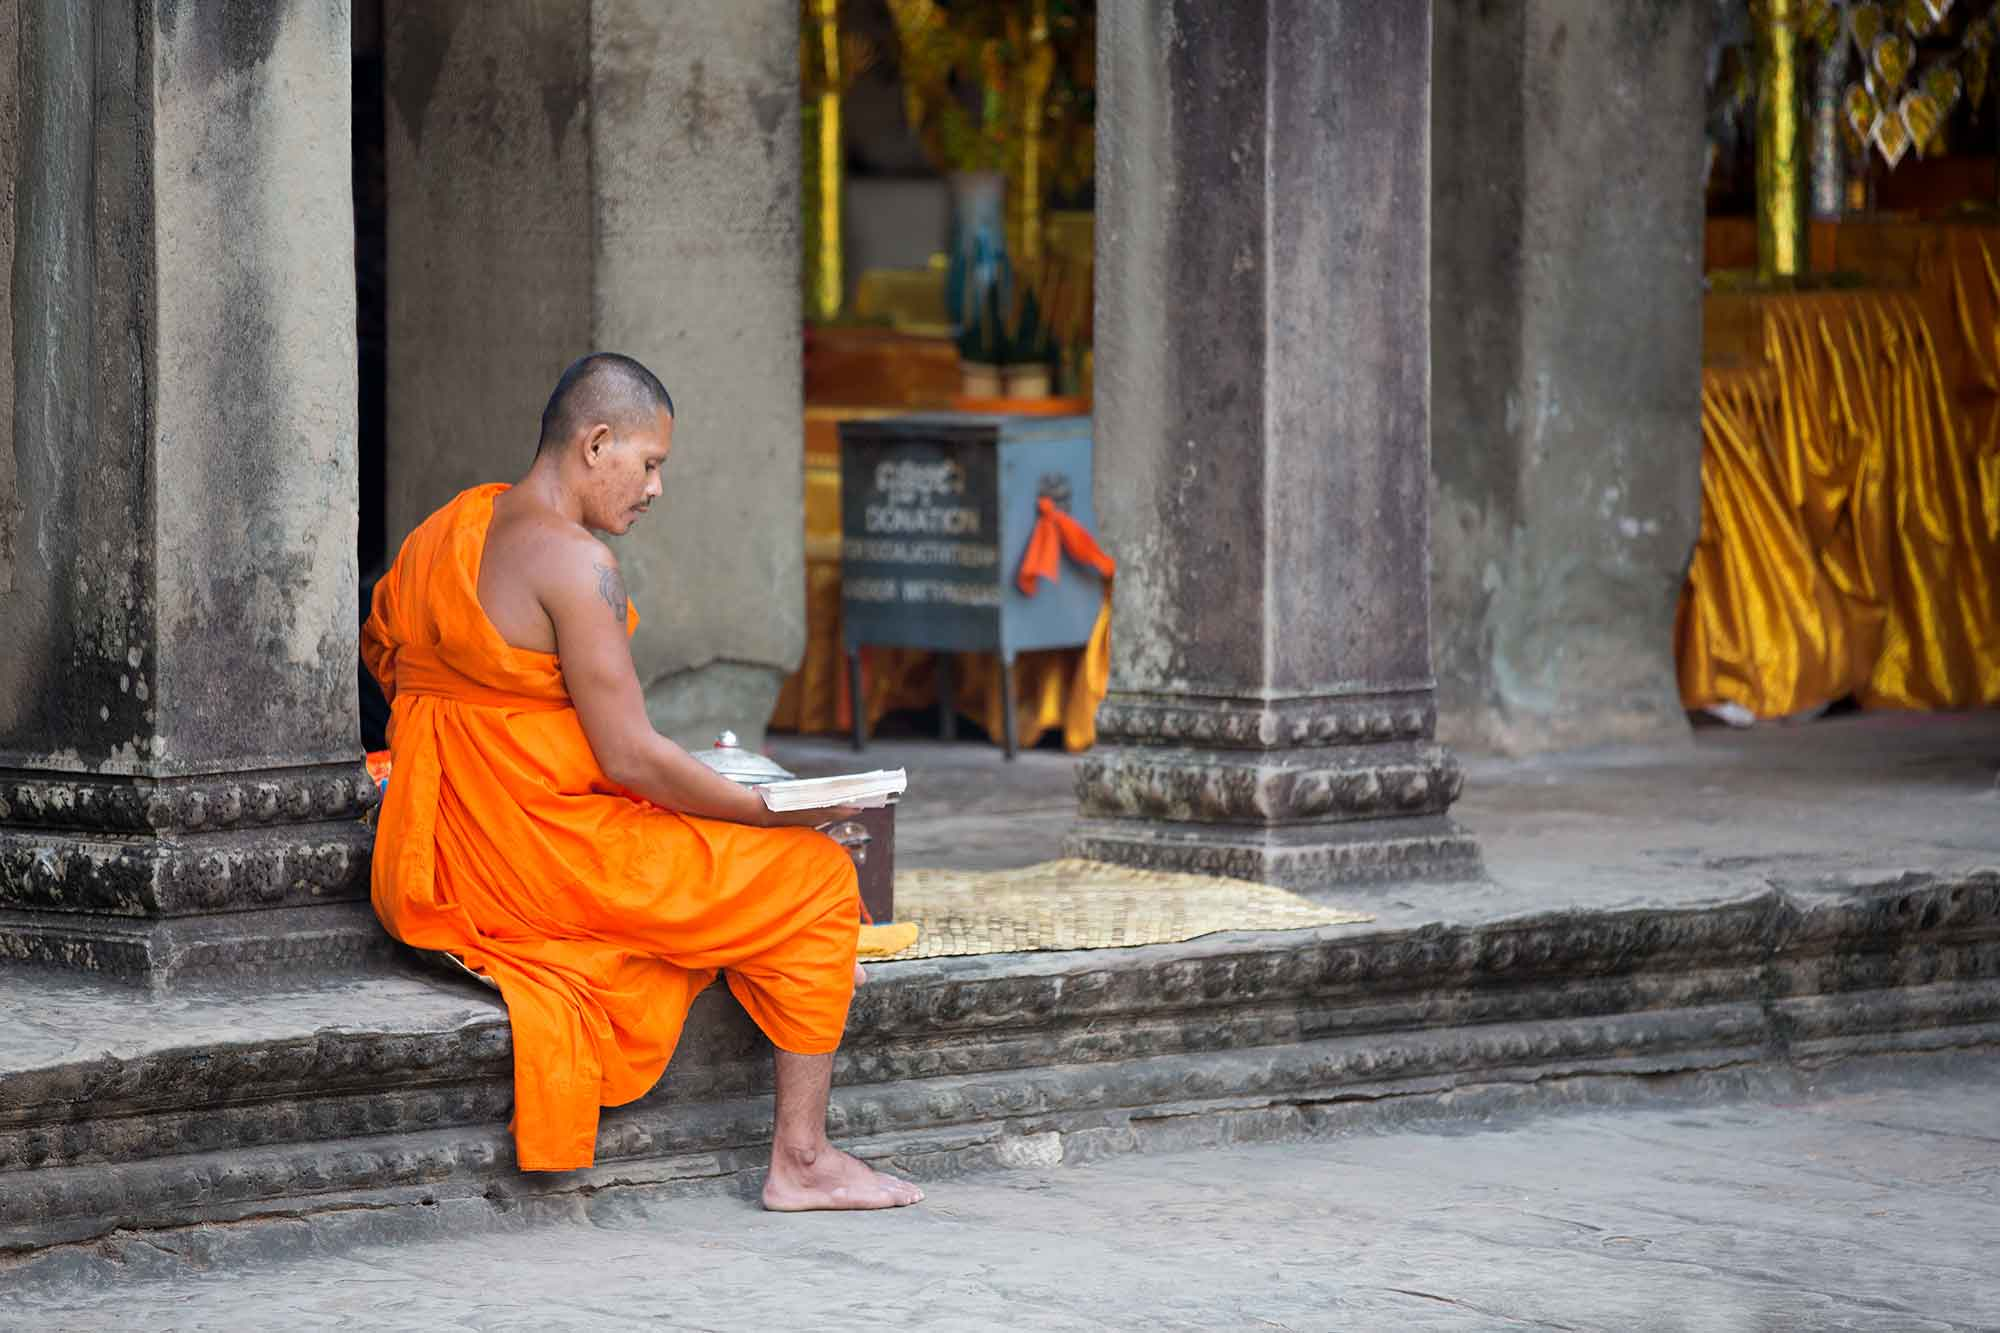 Angkor Wat was once an important Buddhist shrine, so a visit to the temple is a pilgrimage for monks. They come from within Cambodia and from all over the world. © ULLI MAIER & NISA MAIER